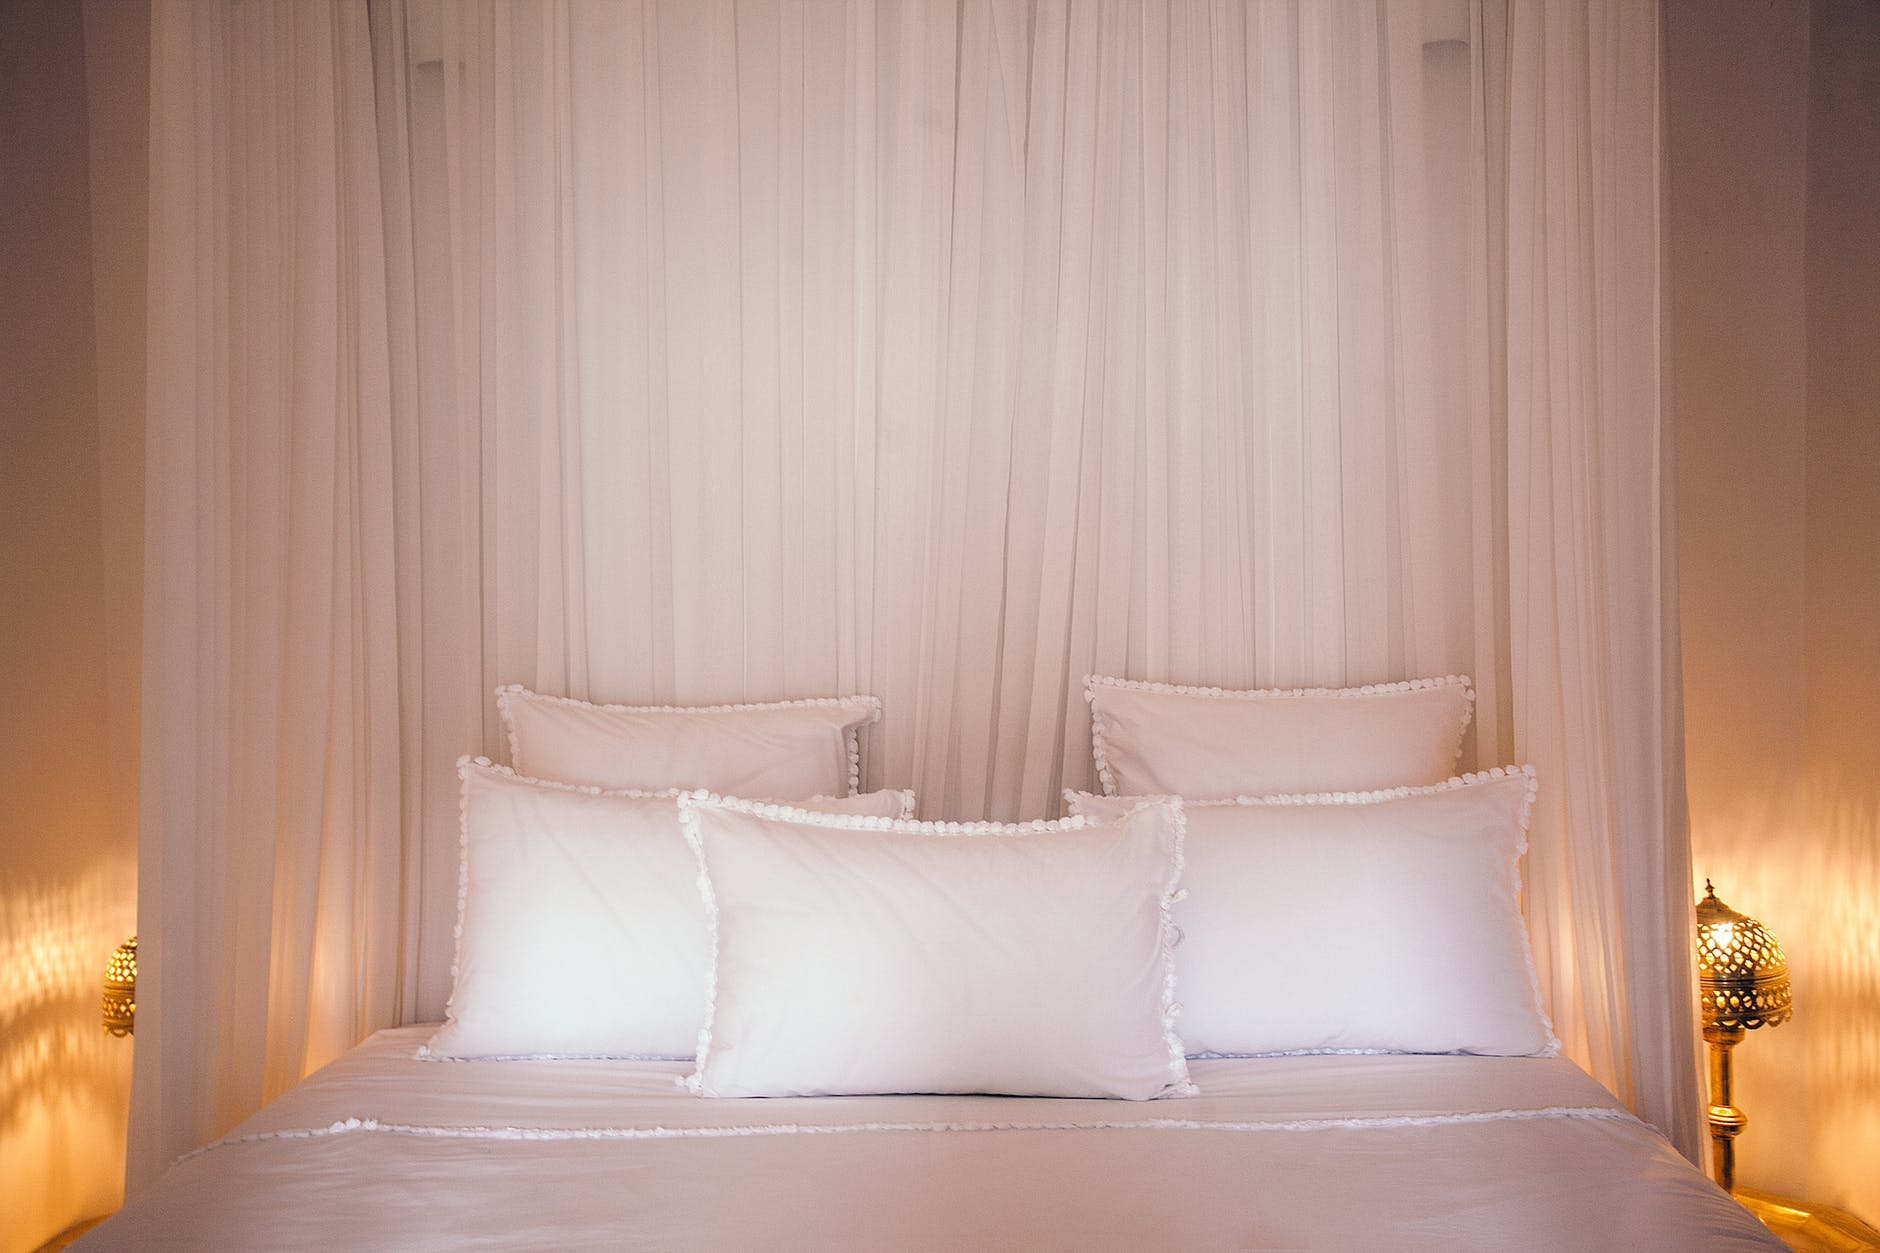 cozy bed with pillows and white canopy